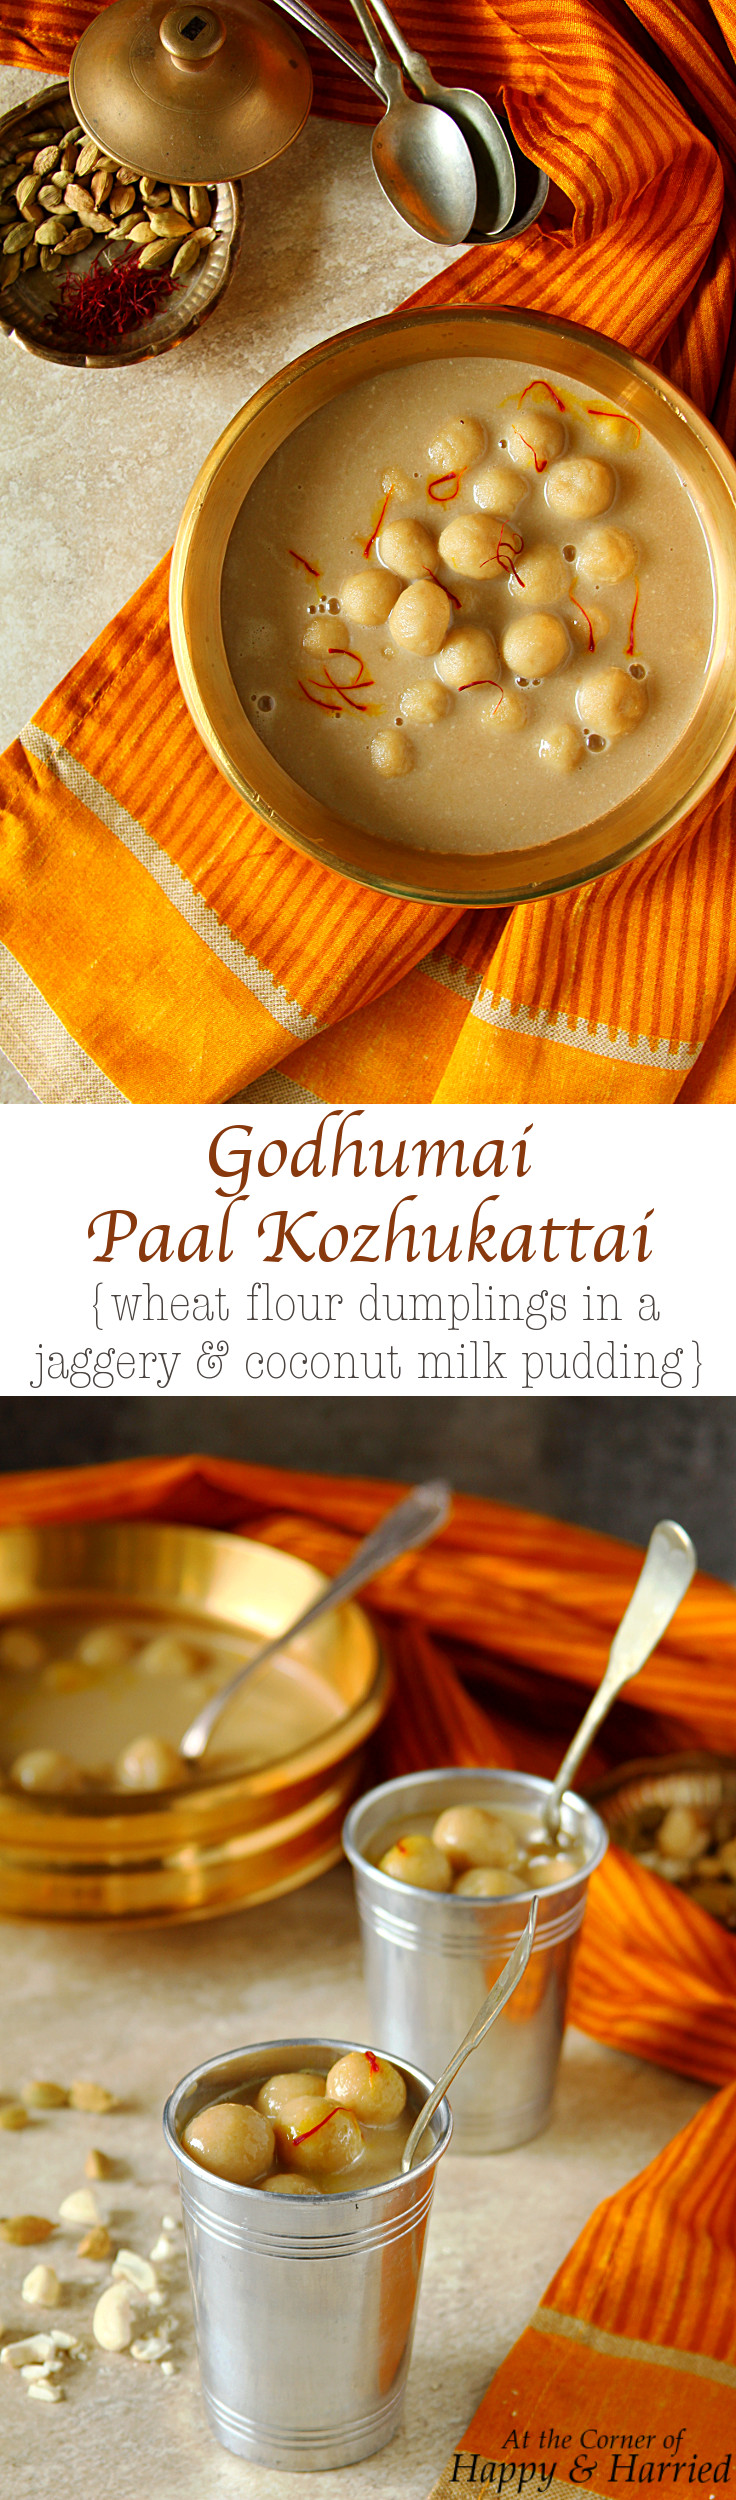 GODHUMAI PAAL KOZHUKATTAI {WHEAT FLOUR DUMPLINGS IN A JAGGERY & COCONUT MILK PUDDING} - HAPPY&HARRIED